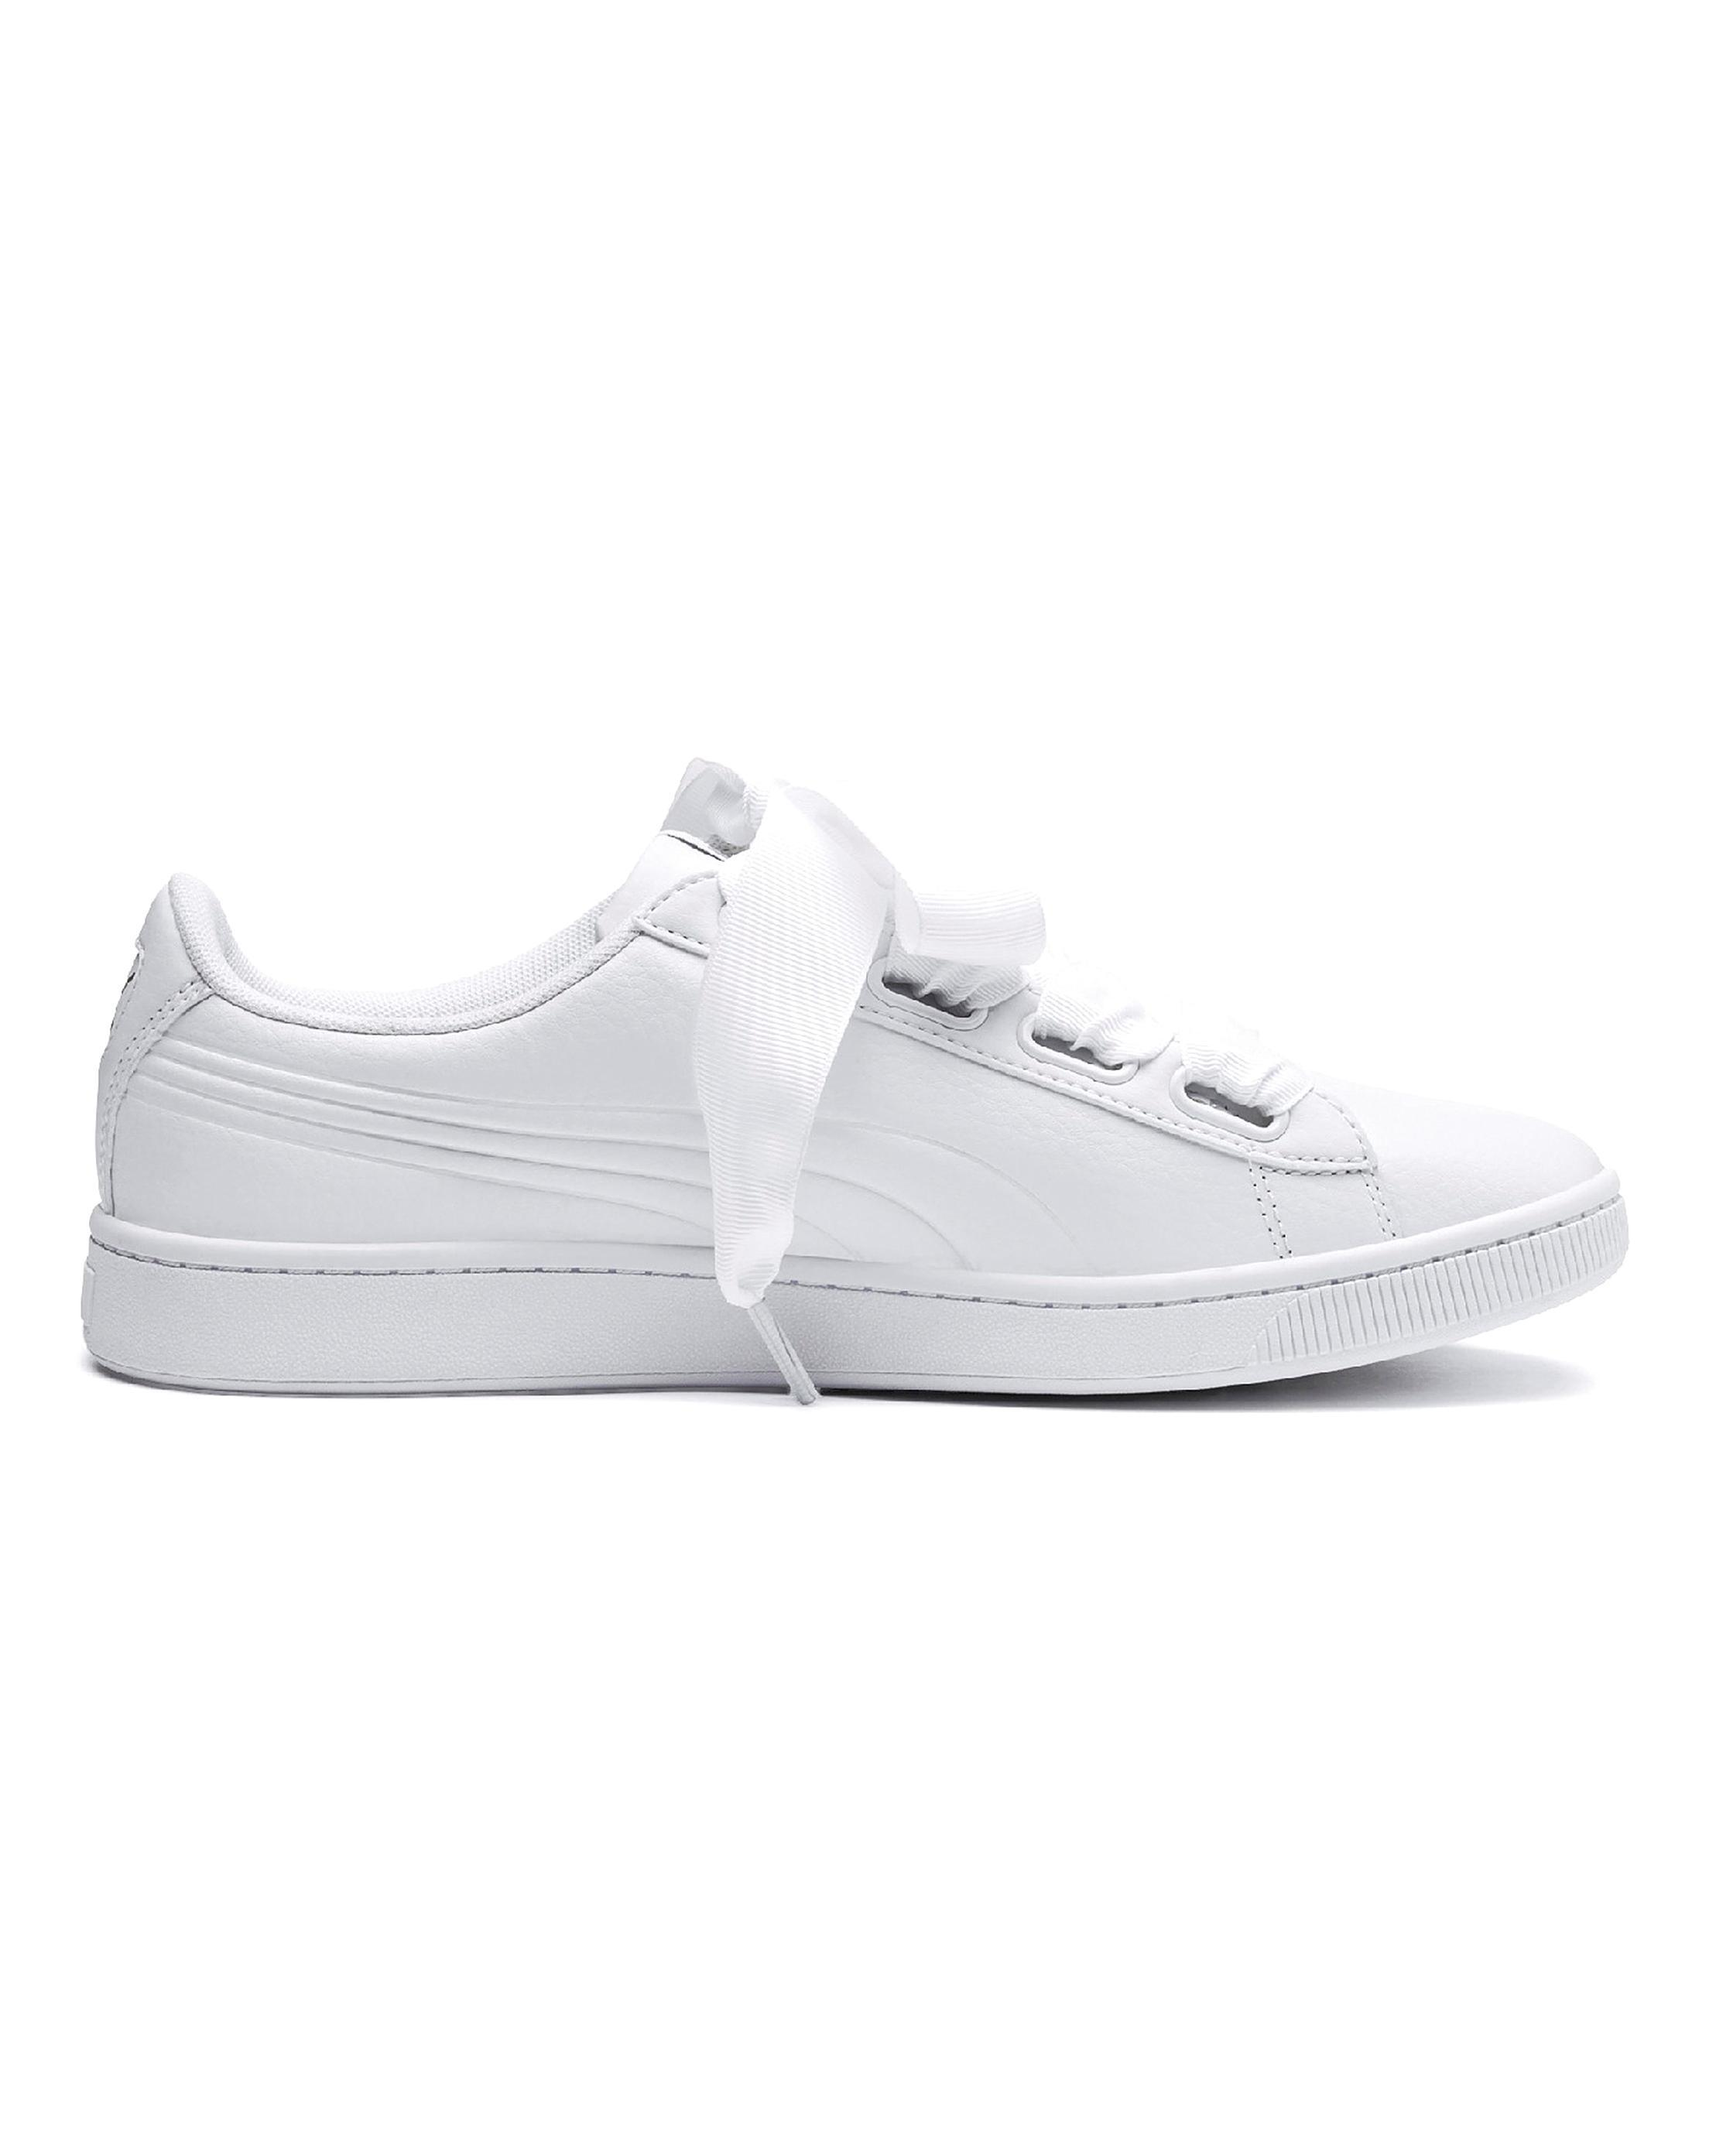 Lyst Simply Be Puma Vikky V2 Ribbon Sneakers in White